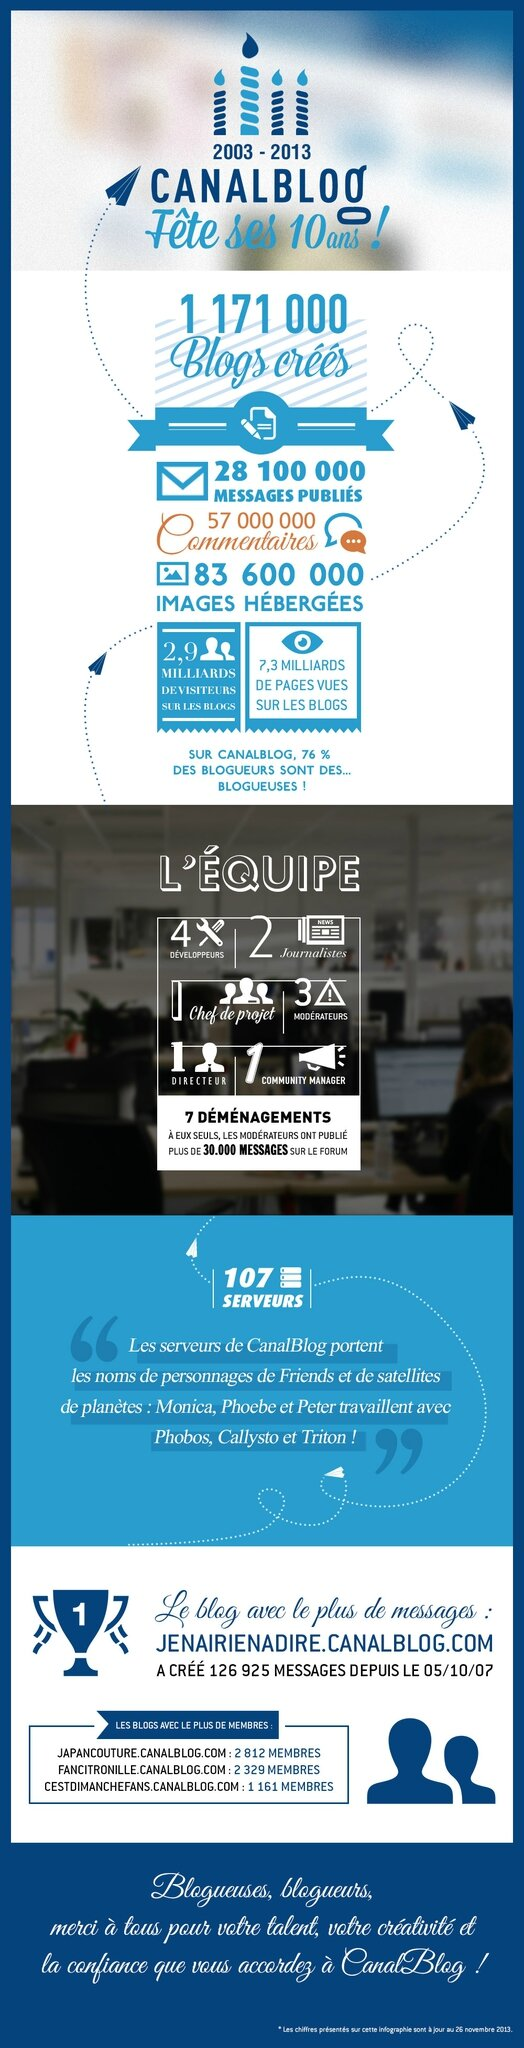 canalblog 10 ans infographie